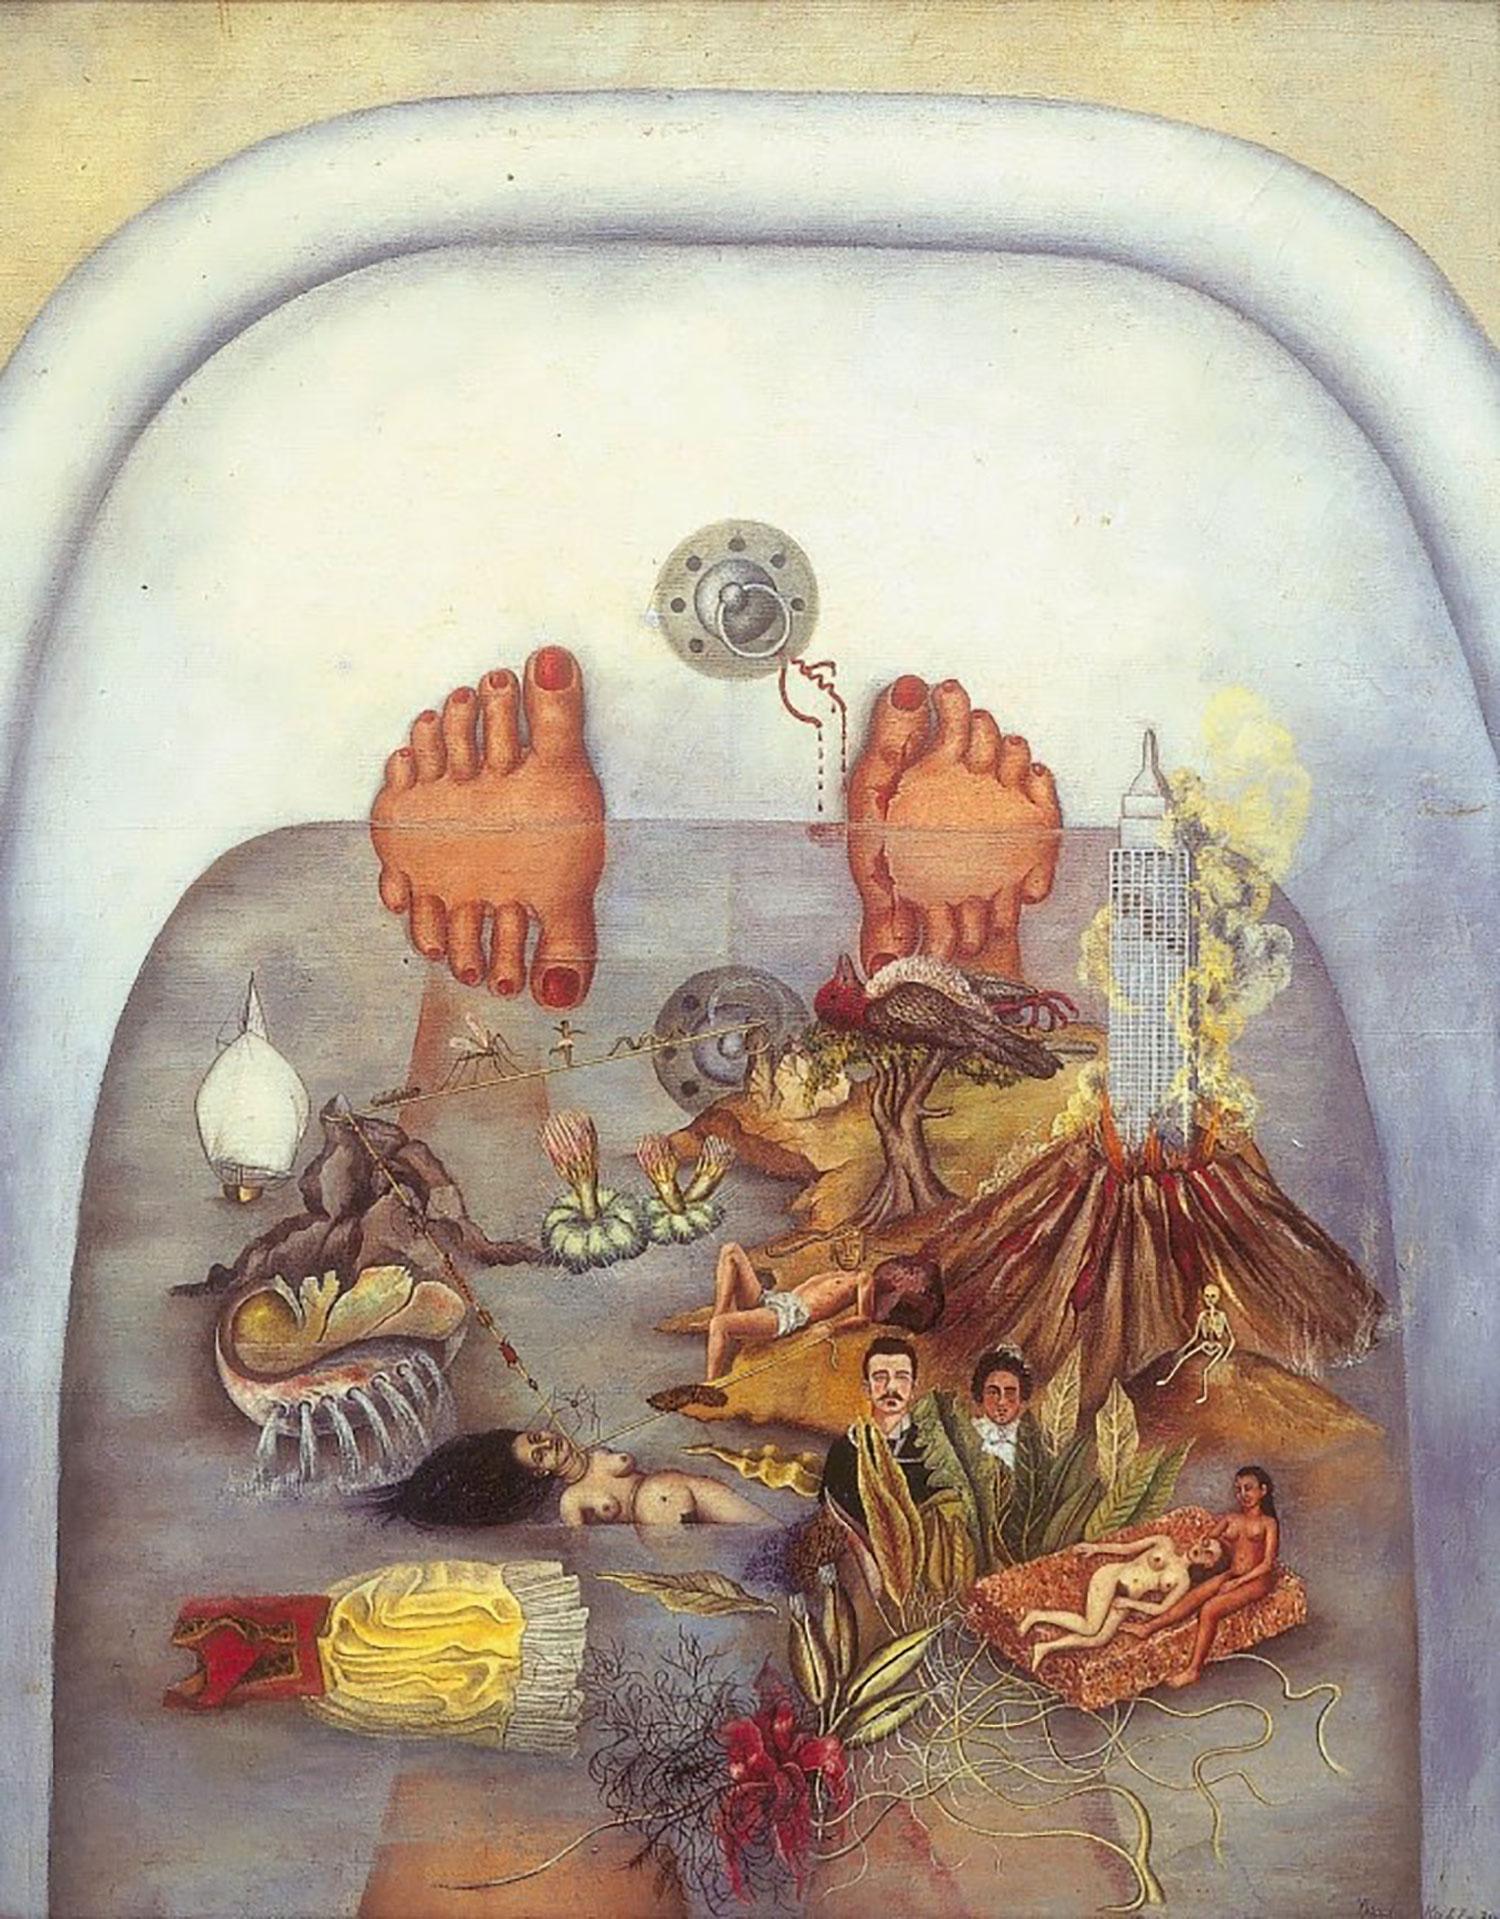 frida-kahlo-bell-and-bain-680x870.jpg